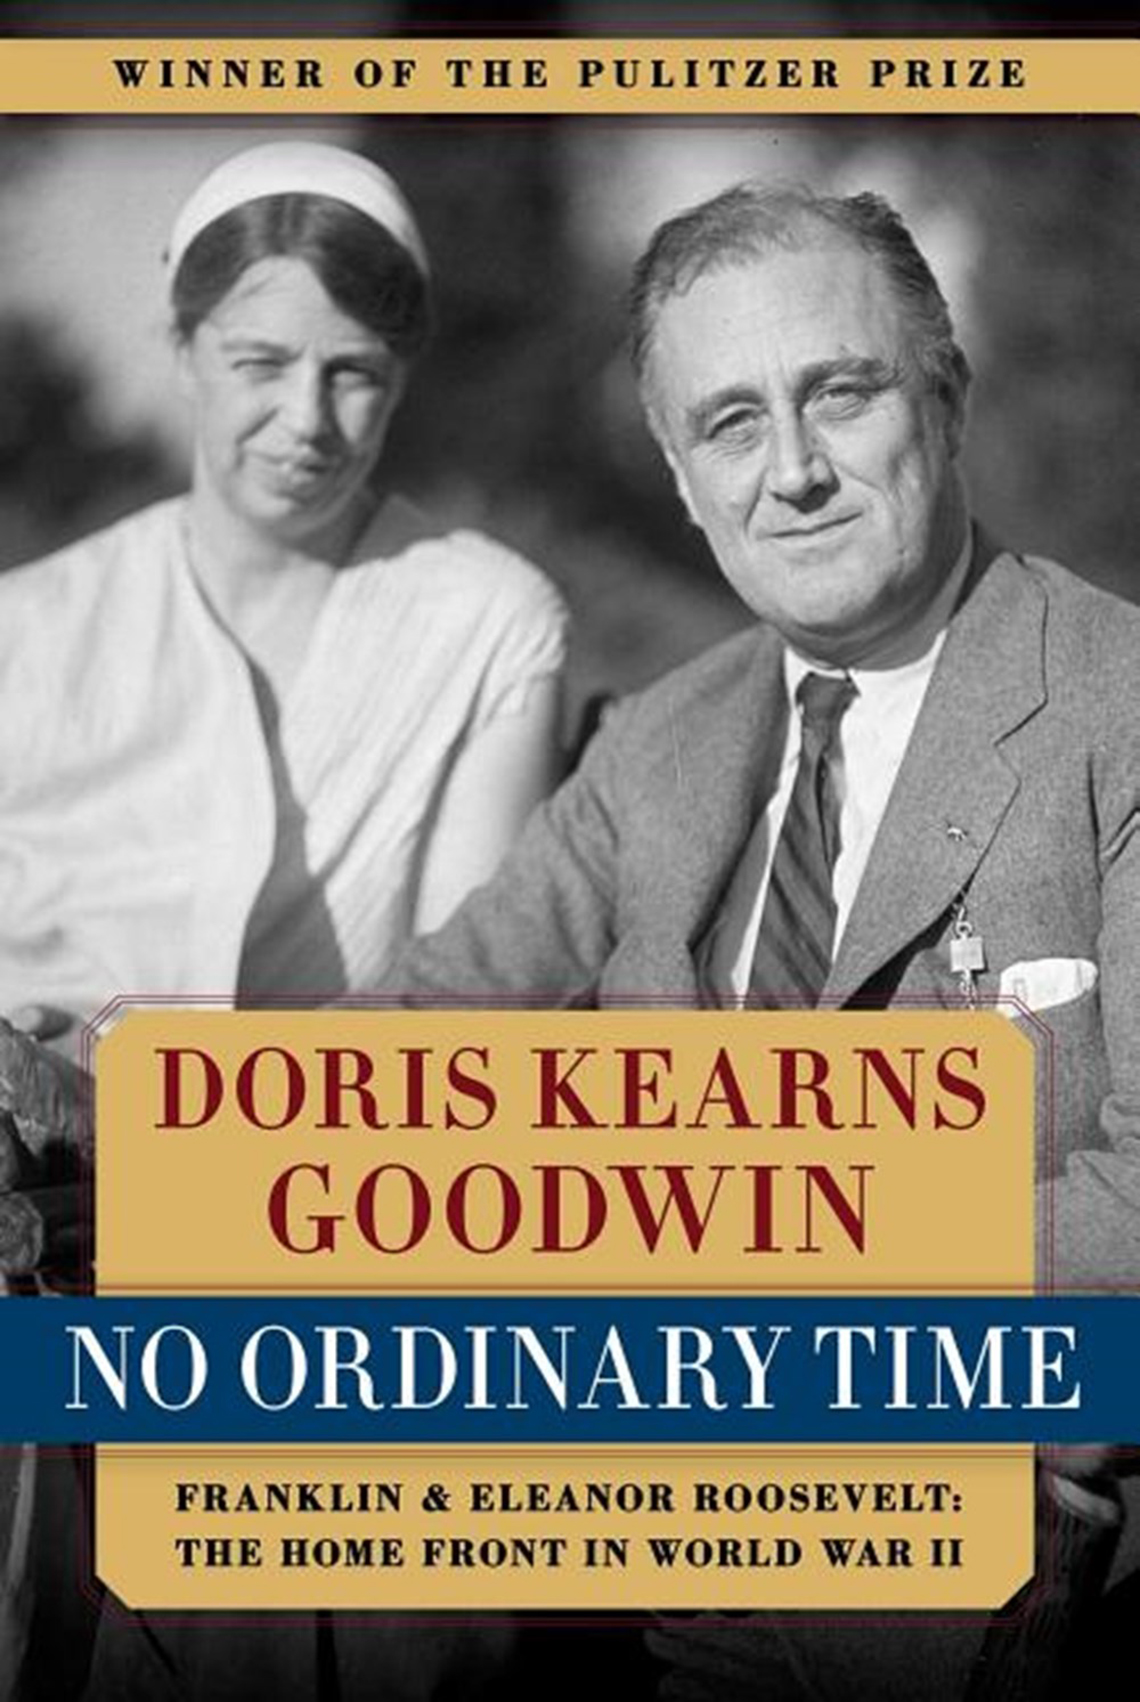 no ordinary time franklin and eleanor roosevelt the home front in world war two book by doris kearns goodwin